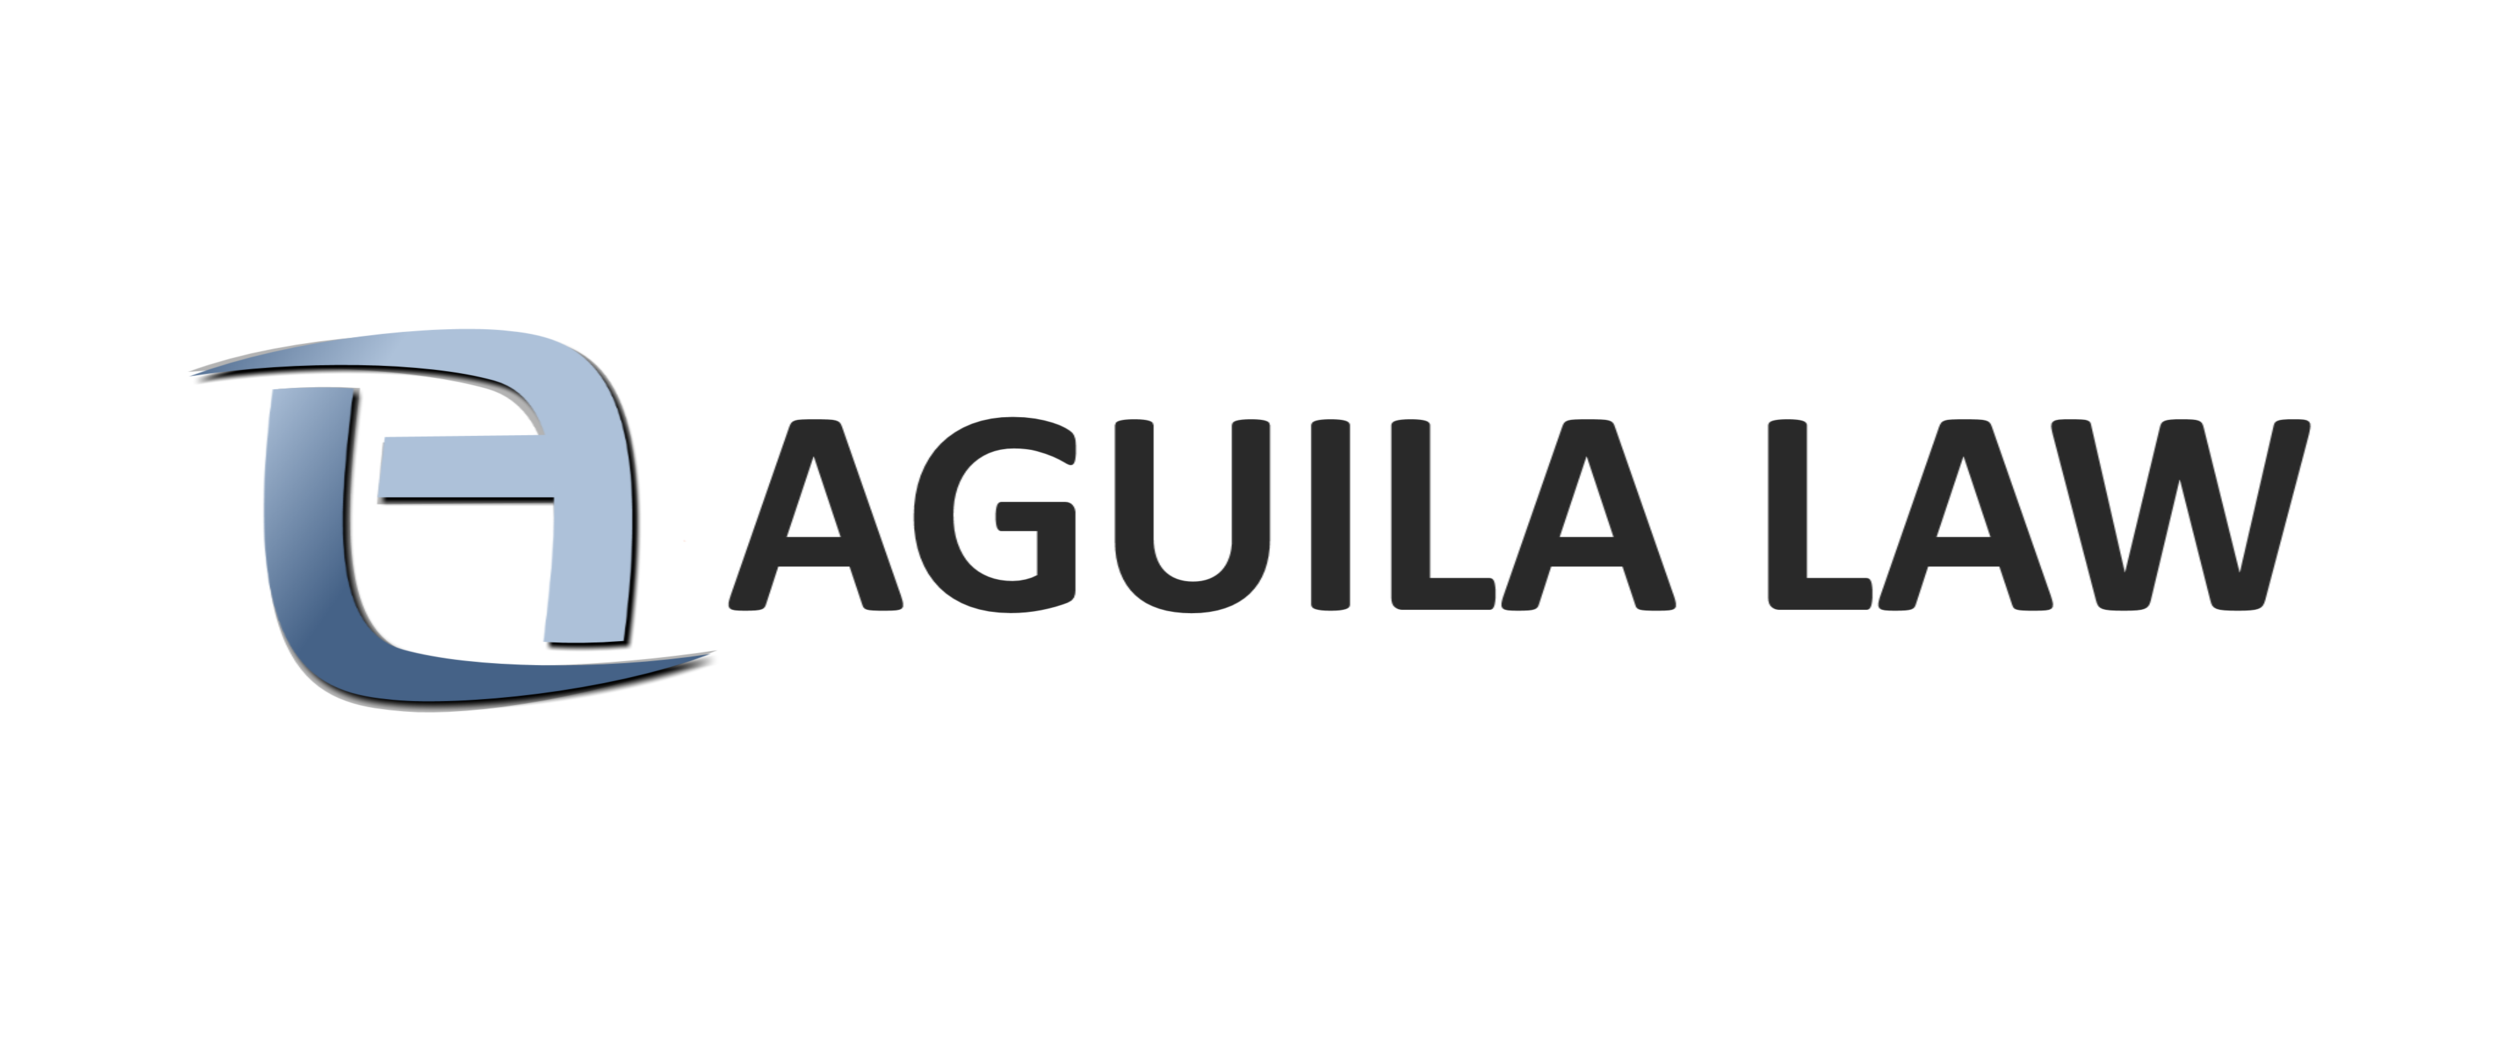 Aguila Law 16.png